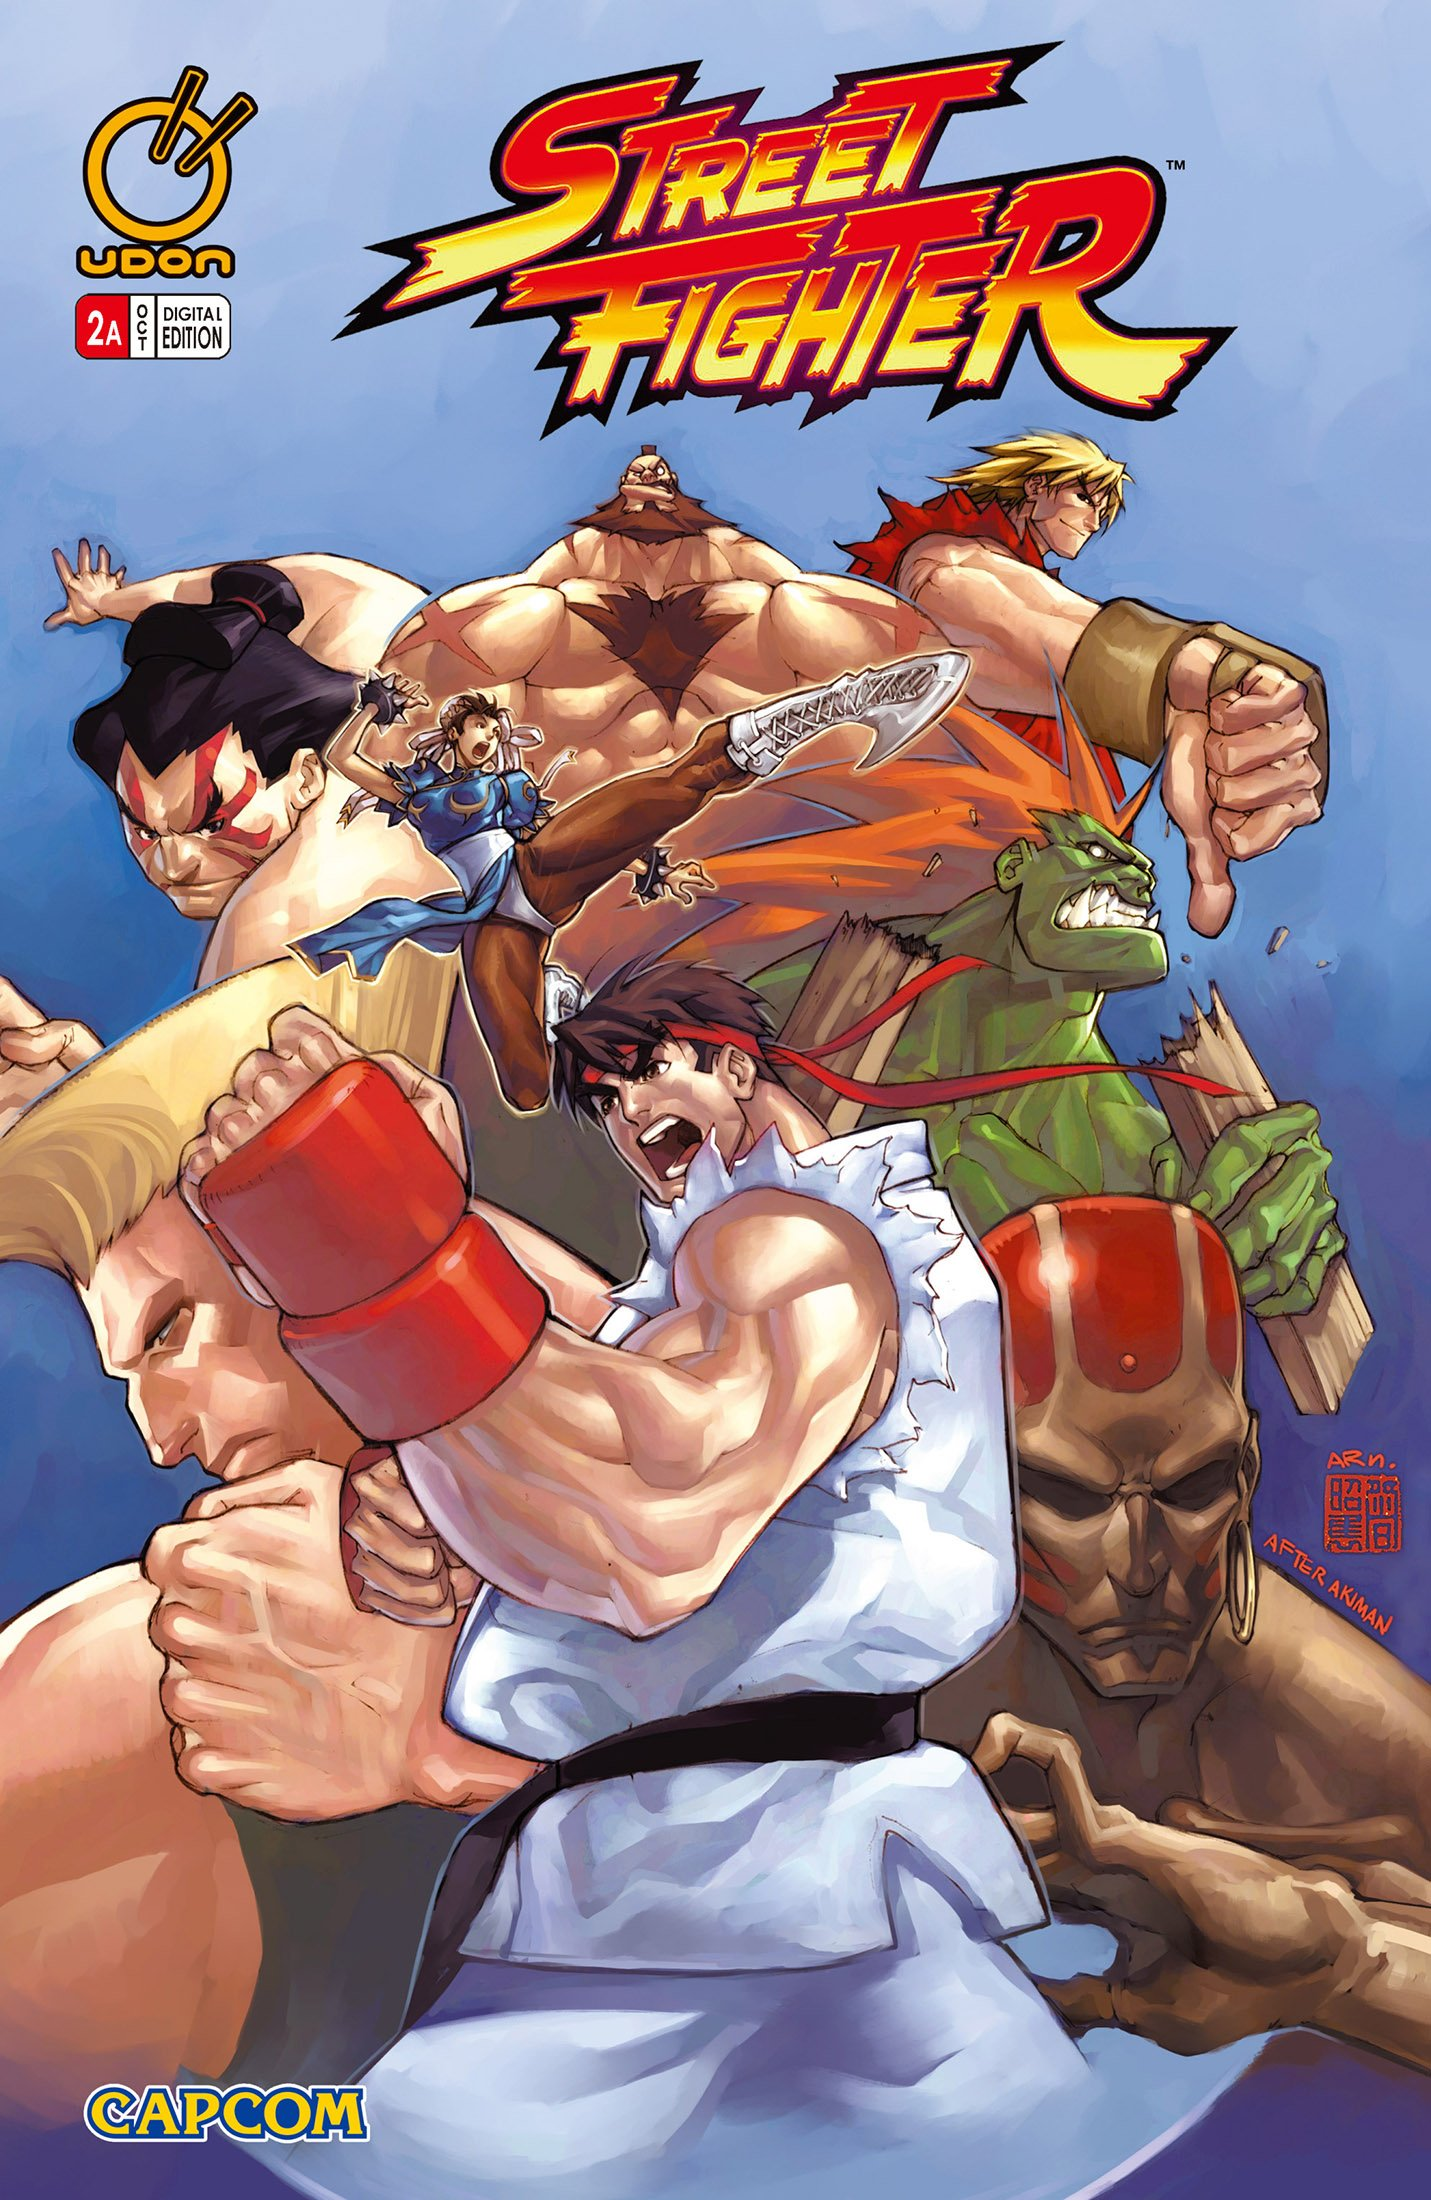 Street Fighter Vol.1 002 (October 2003) (cover a)